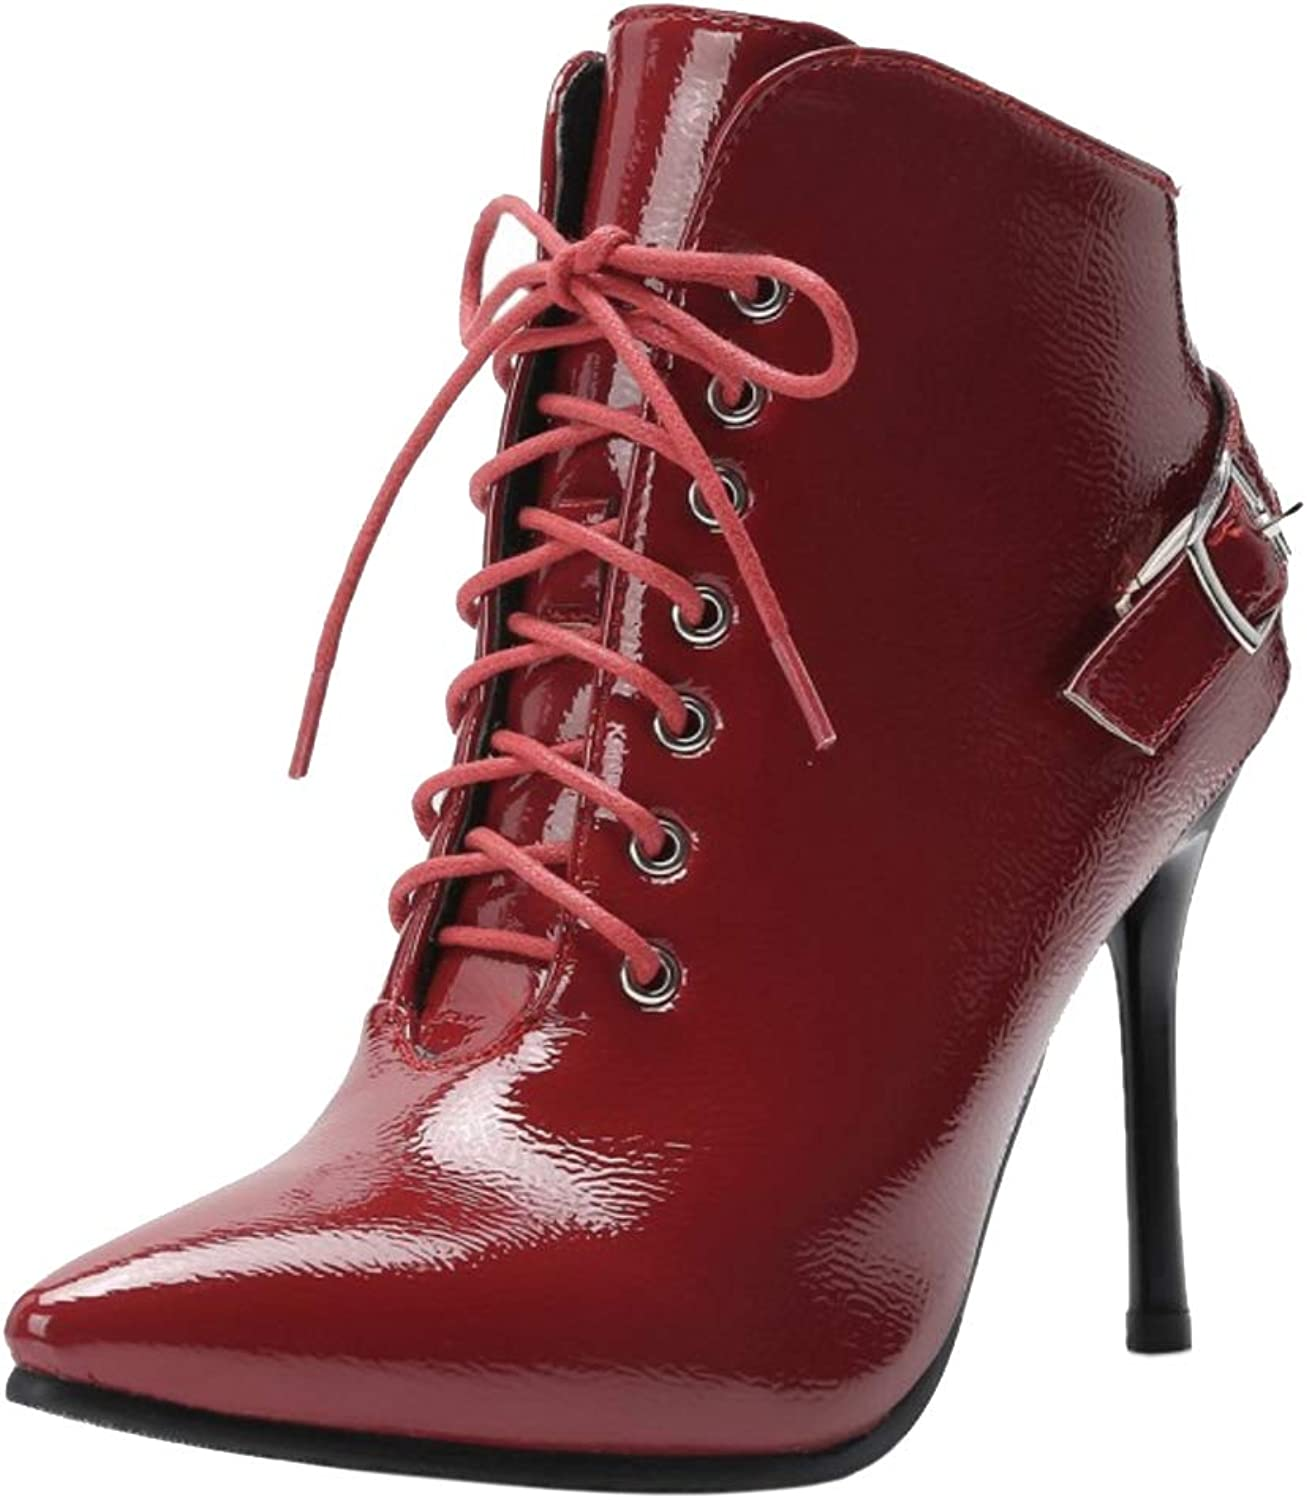 TAOFFEN Women Stylish Lace Up Boots Pointed Toe